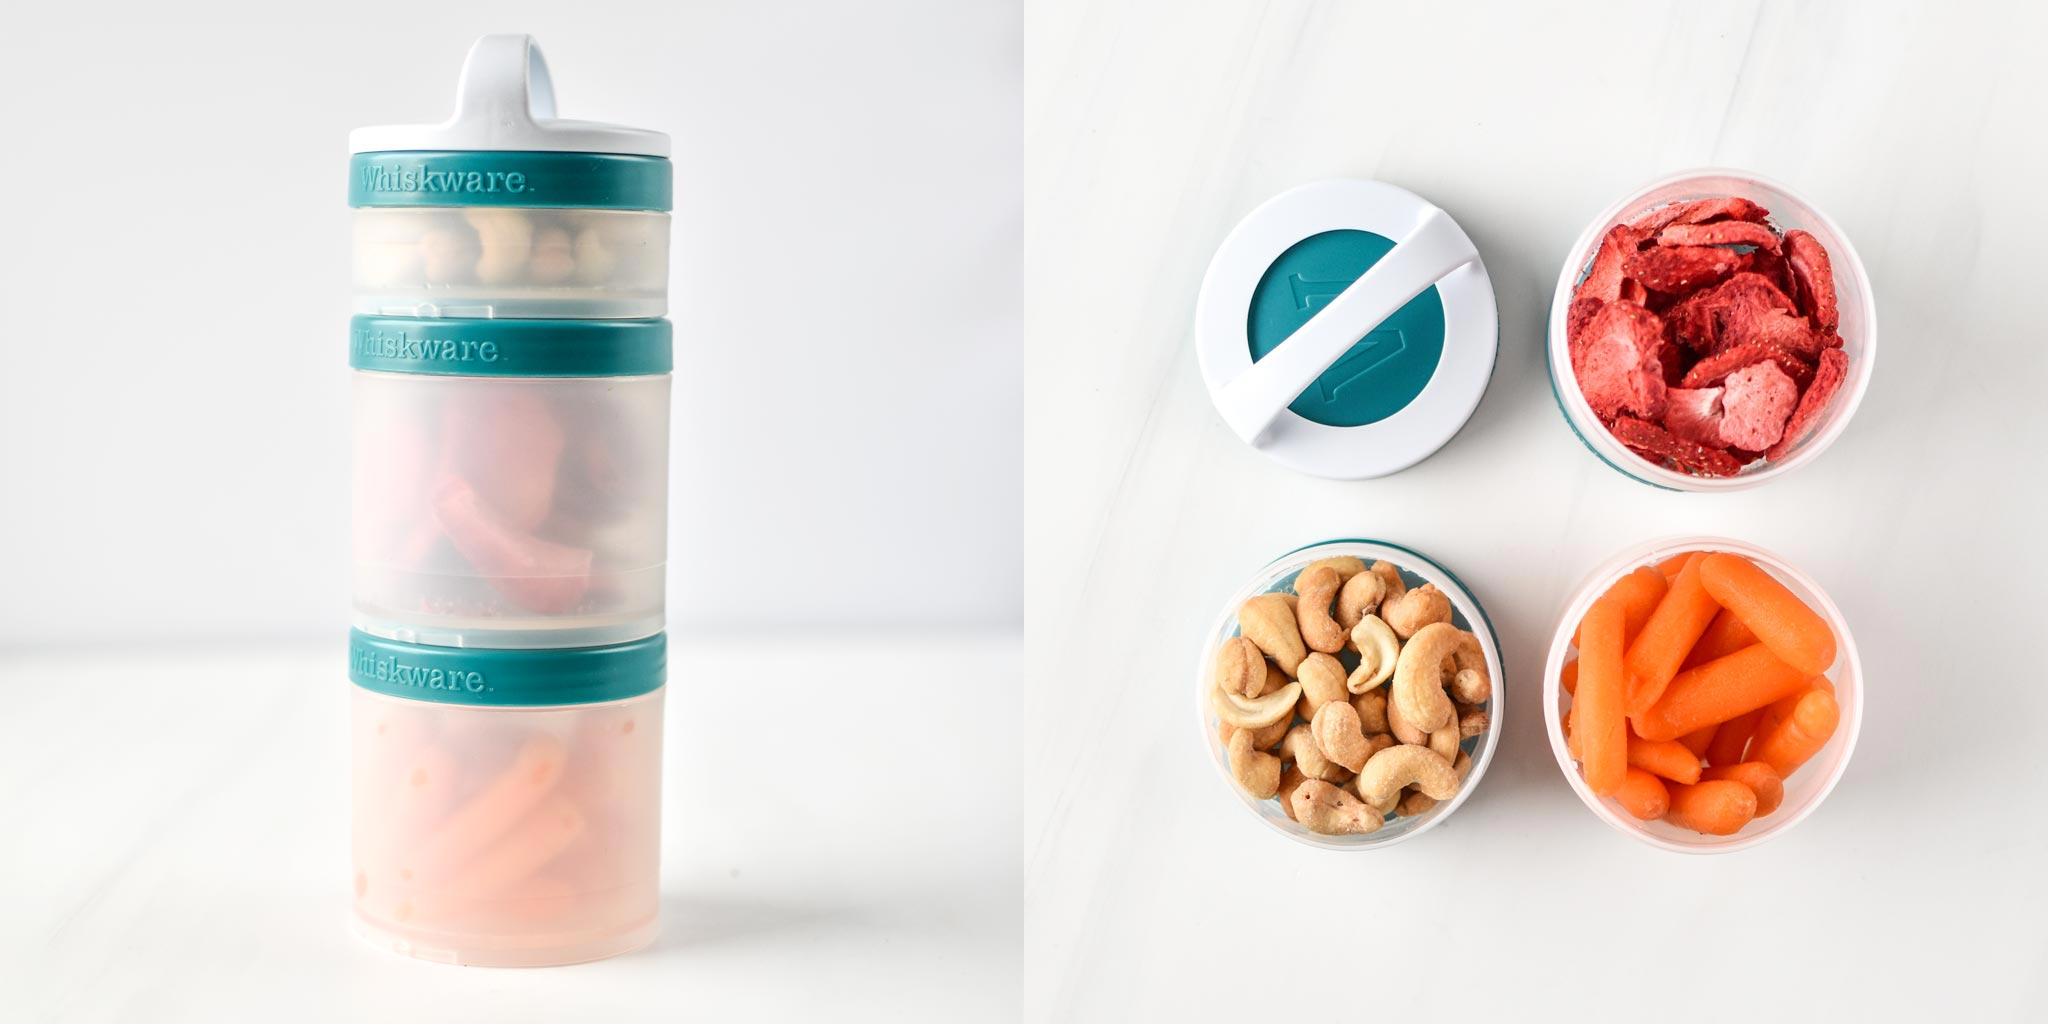 Snacks in a Stackable Whiskware container